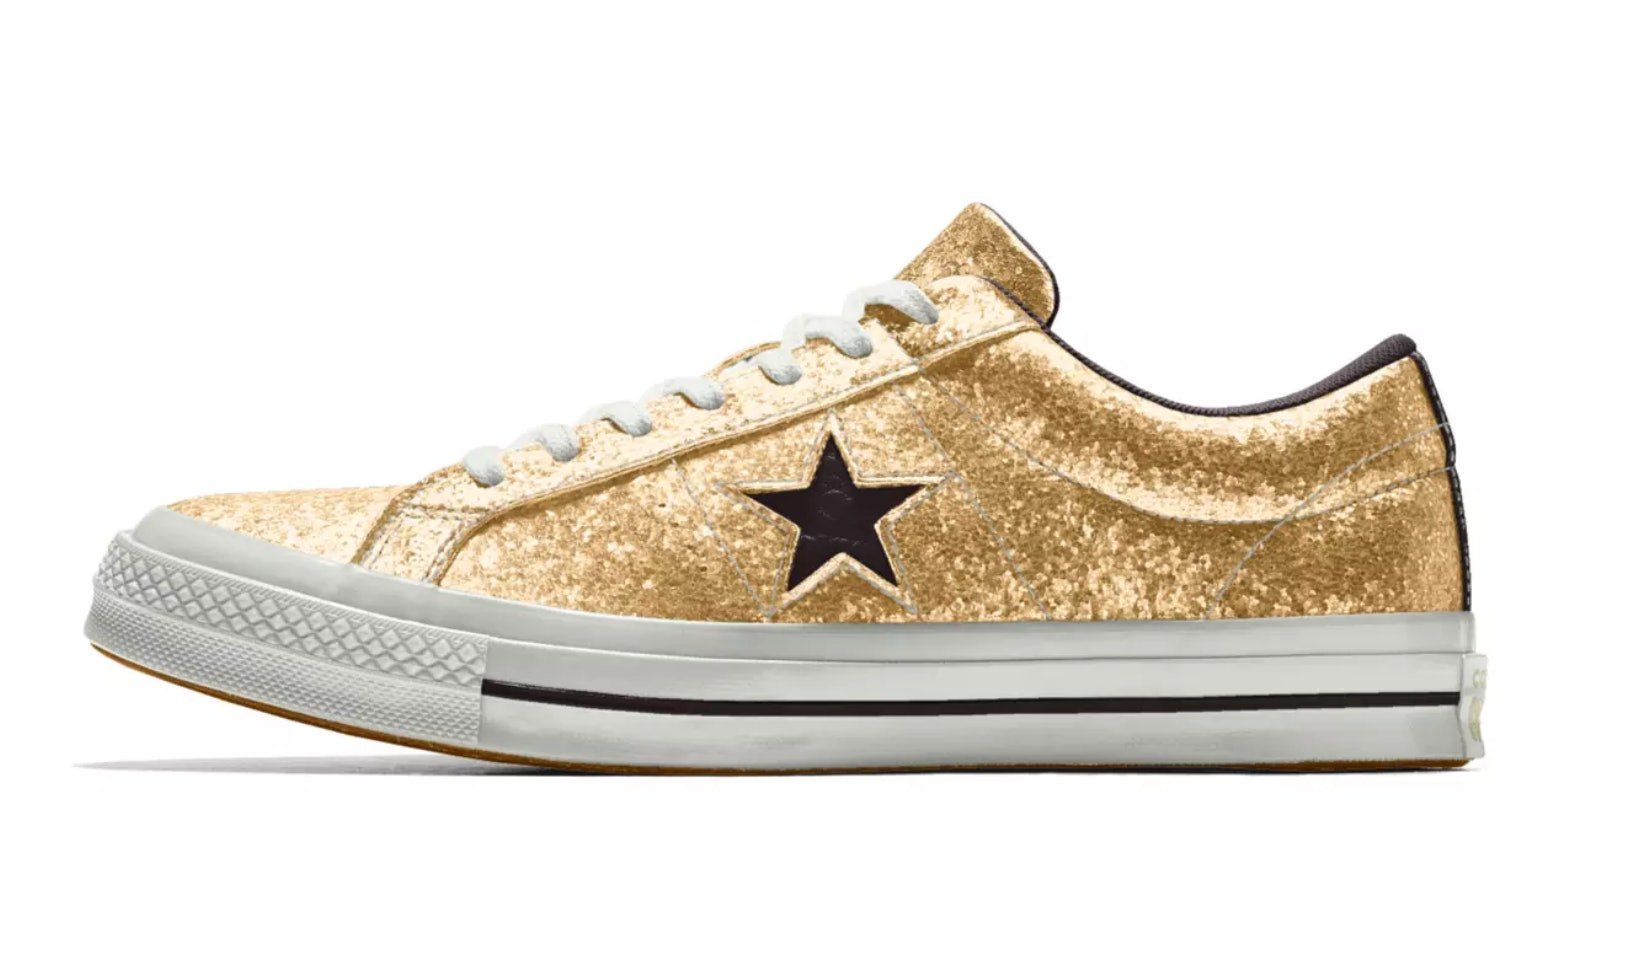 318d5d82876a Converse s One Star Glitter Sneakers Are Like Galaxies For Your Feet